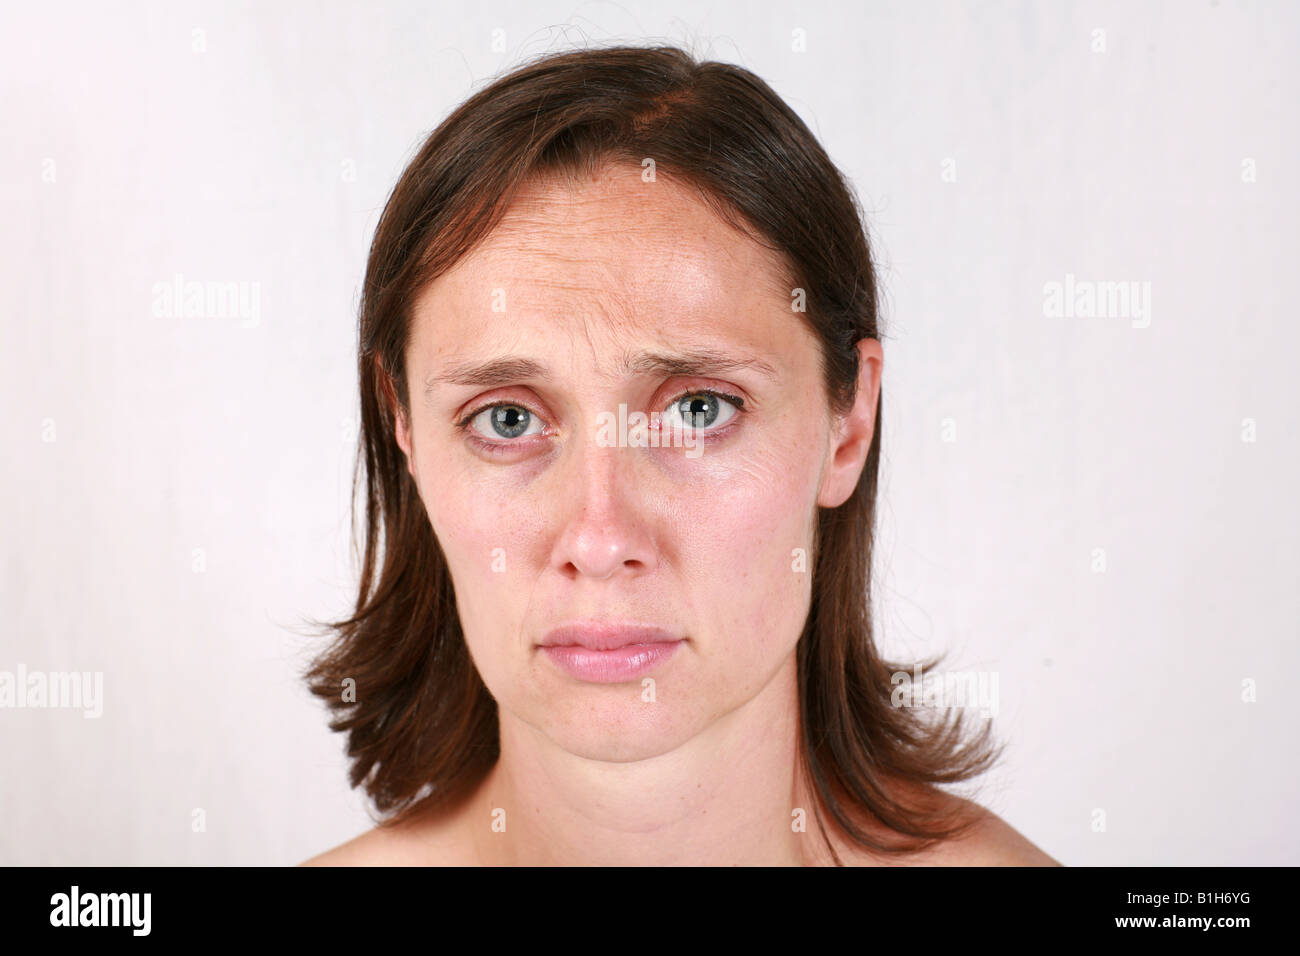 Young brunette woman head shot closeup with sad upset despondent depressed down dispirited low somber facial expression - Stock Image